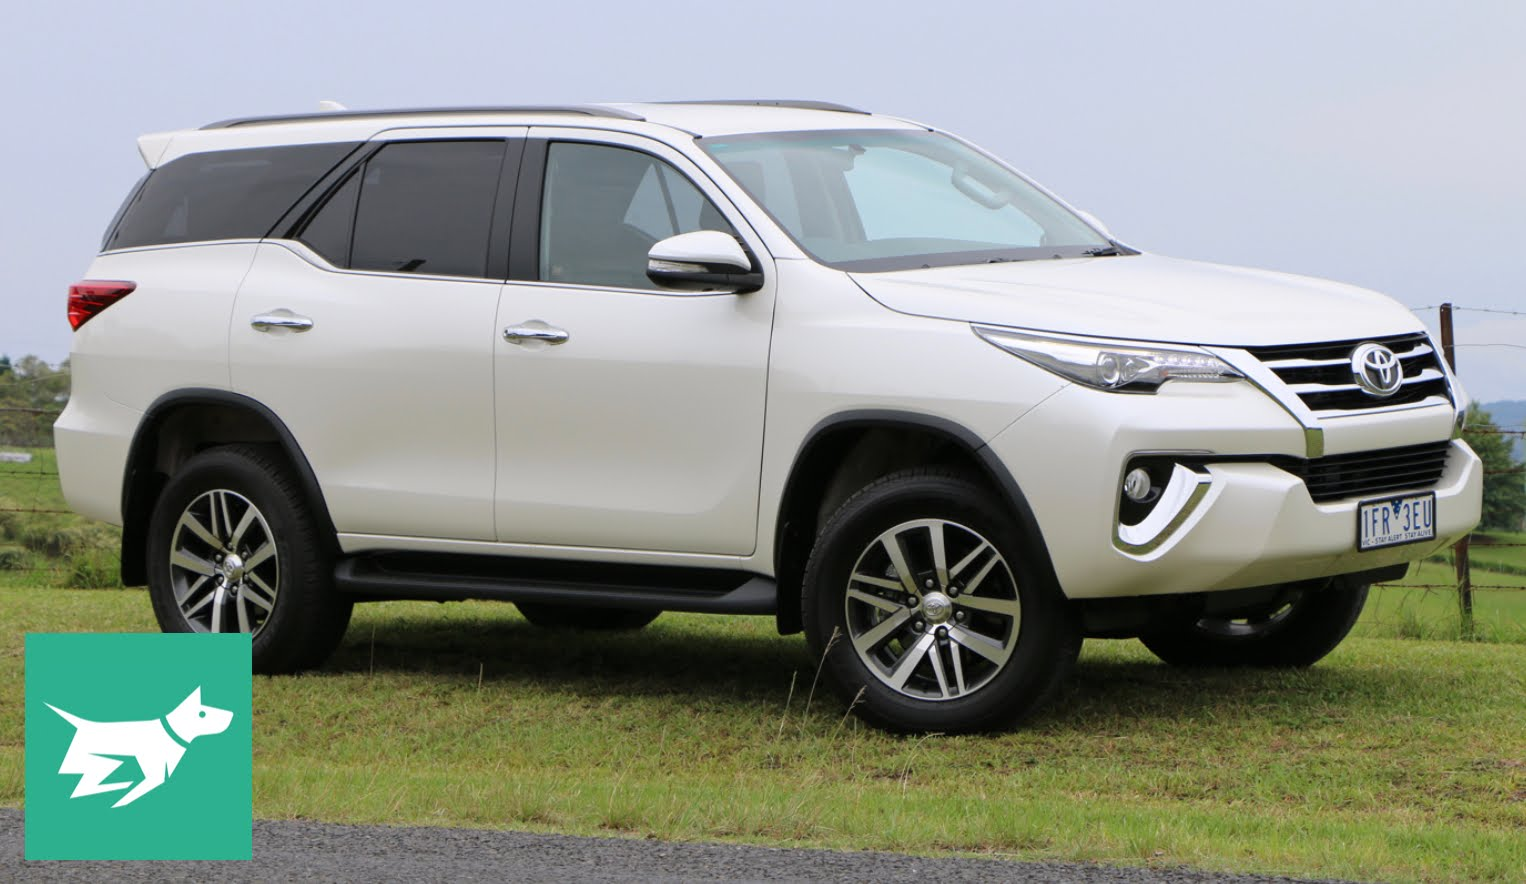 HQ Toyota Fortuner Wallpapers | File 134.42Kb